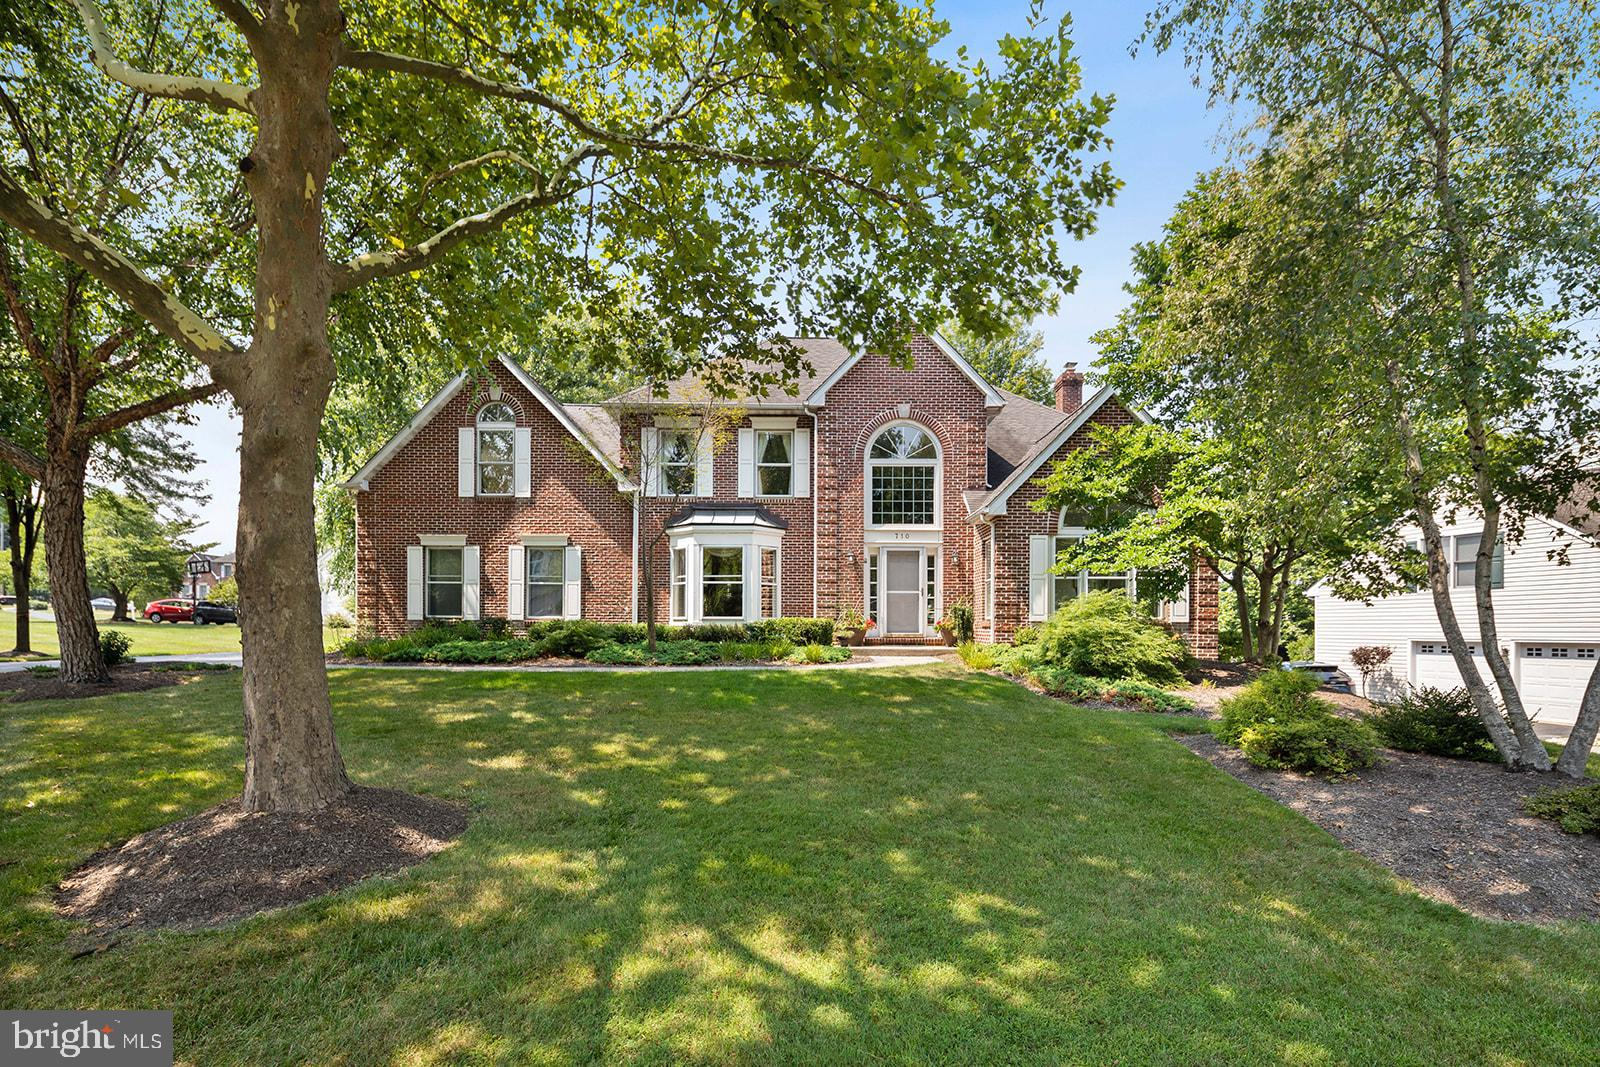 Move right in to this beautiful brick single-family home in Valley Forge Estates! 710 Outpost Circle is ready to welcome its next owners. You'll immediate notice the natural light throughout the home as you step into the front entryway with soaring ceilings. To your right is a perfect flex space with greenery views which the current owners use as an office and music room. To the left is a dedicated dining space perfect for large gatherings. Down the hallway the beautiful hardwood floors extend into the spacious living room with a fireplace. You'll love the updated kitchen with plenty of granite counter space, stainless-steel appliances, and eat-in area with a lovely window seat! Past the kitchen and through the mudroom/laundry area is the spacious two-car garage with an alcove perfect for additional storage. Enjoy outdoor dining and entertaining on your composite deck and large side yard. Back inside and into the fully-finished basement is plenty of room for a workout area, media room, office, or secondary living space with plenty of extra storage. Head upstairs to the second floor, featuring three spacious bedrooms with an updated hall bathroom. Down the hall is your spacious primary bedroom complete with a great walk-in closet and modern bathroom. Situated on a quiet cul-de-sac in Upper Merion Township of Wayne, this home is convenient to the King of Prussia Mall and Town Center, downtown Wayne, major highways, and nature trails like the McKraig Nature Trail and Bob White Park. Make an appointment and take advantage of all this home has to offer!